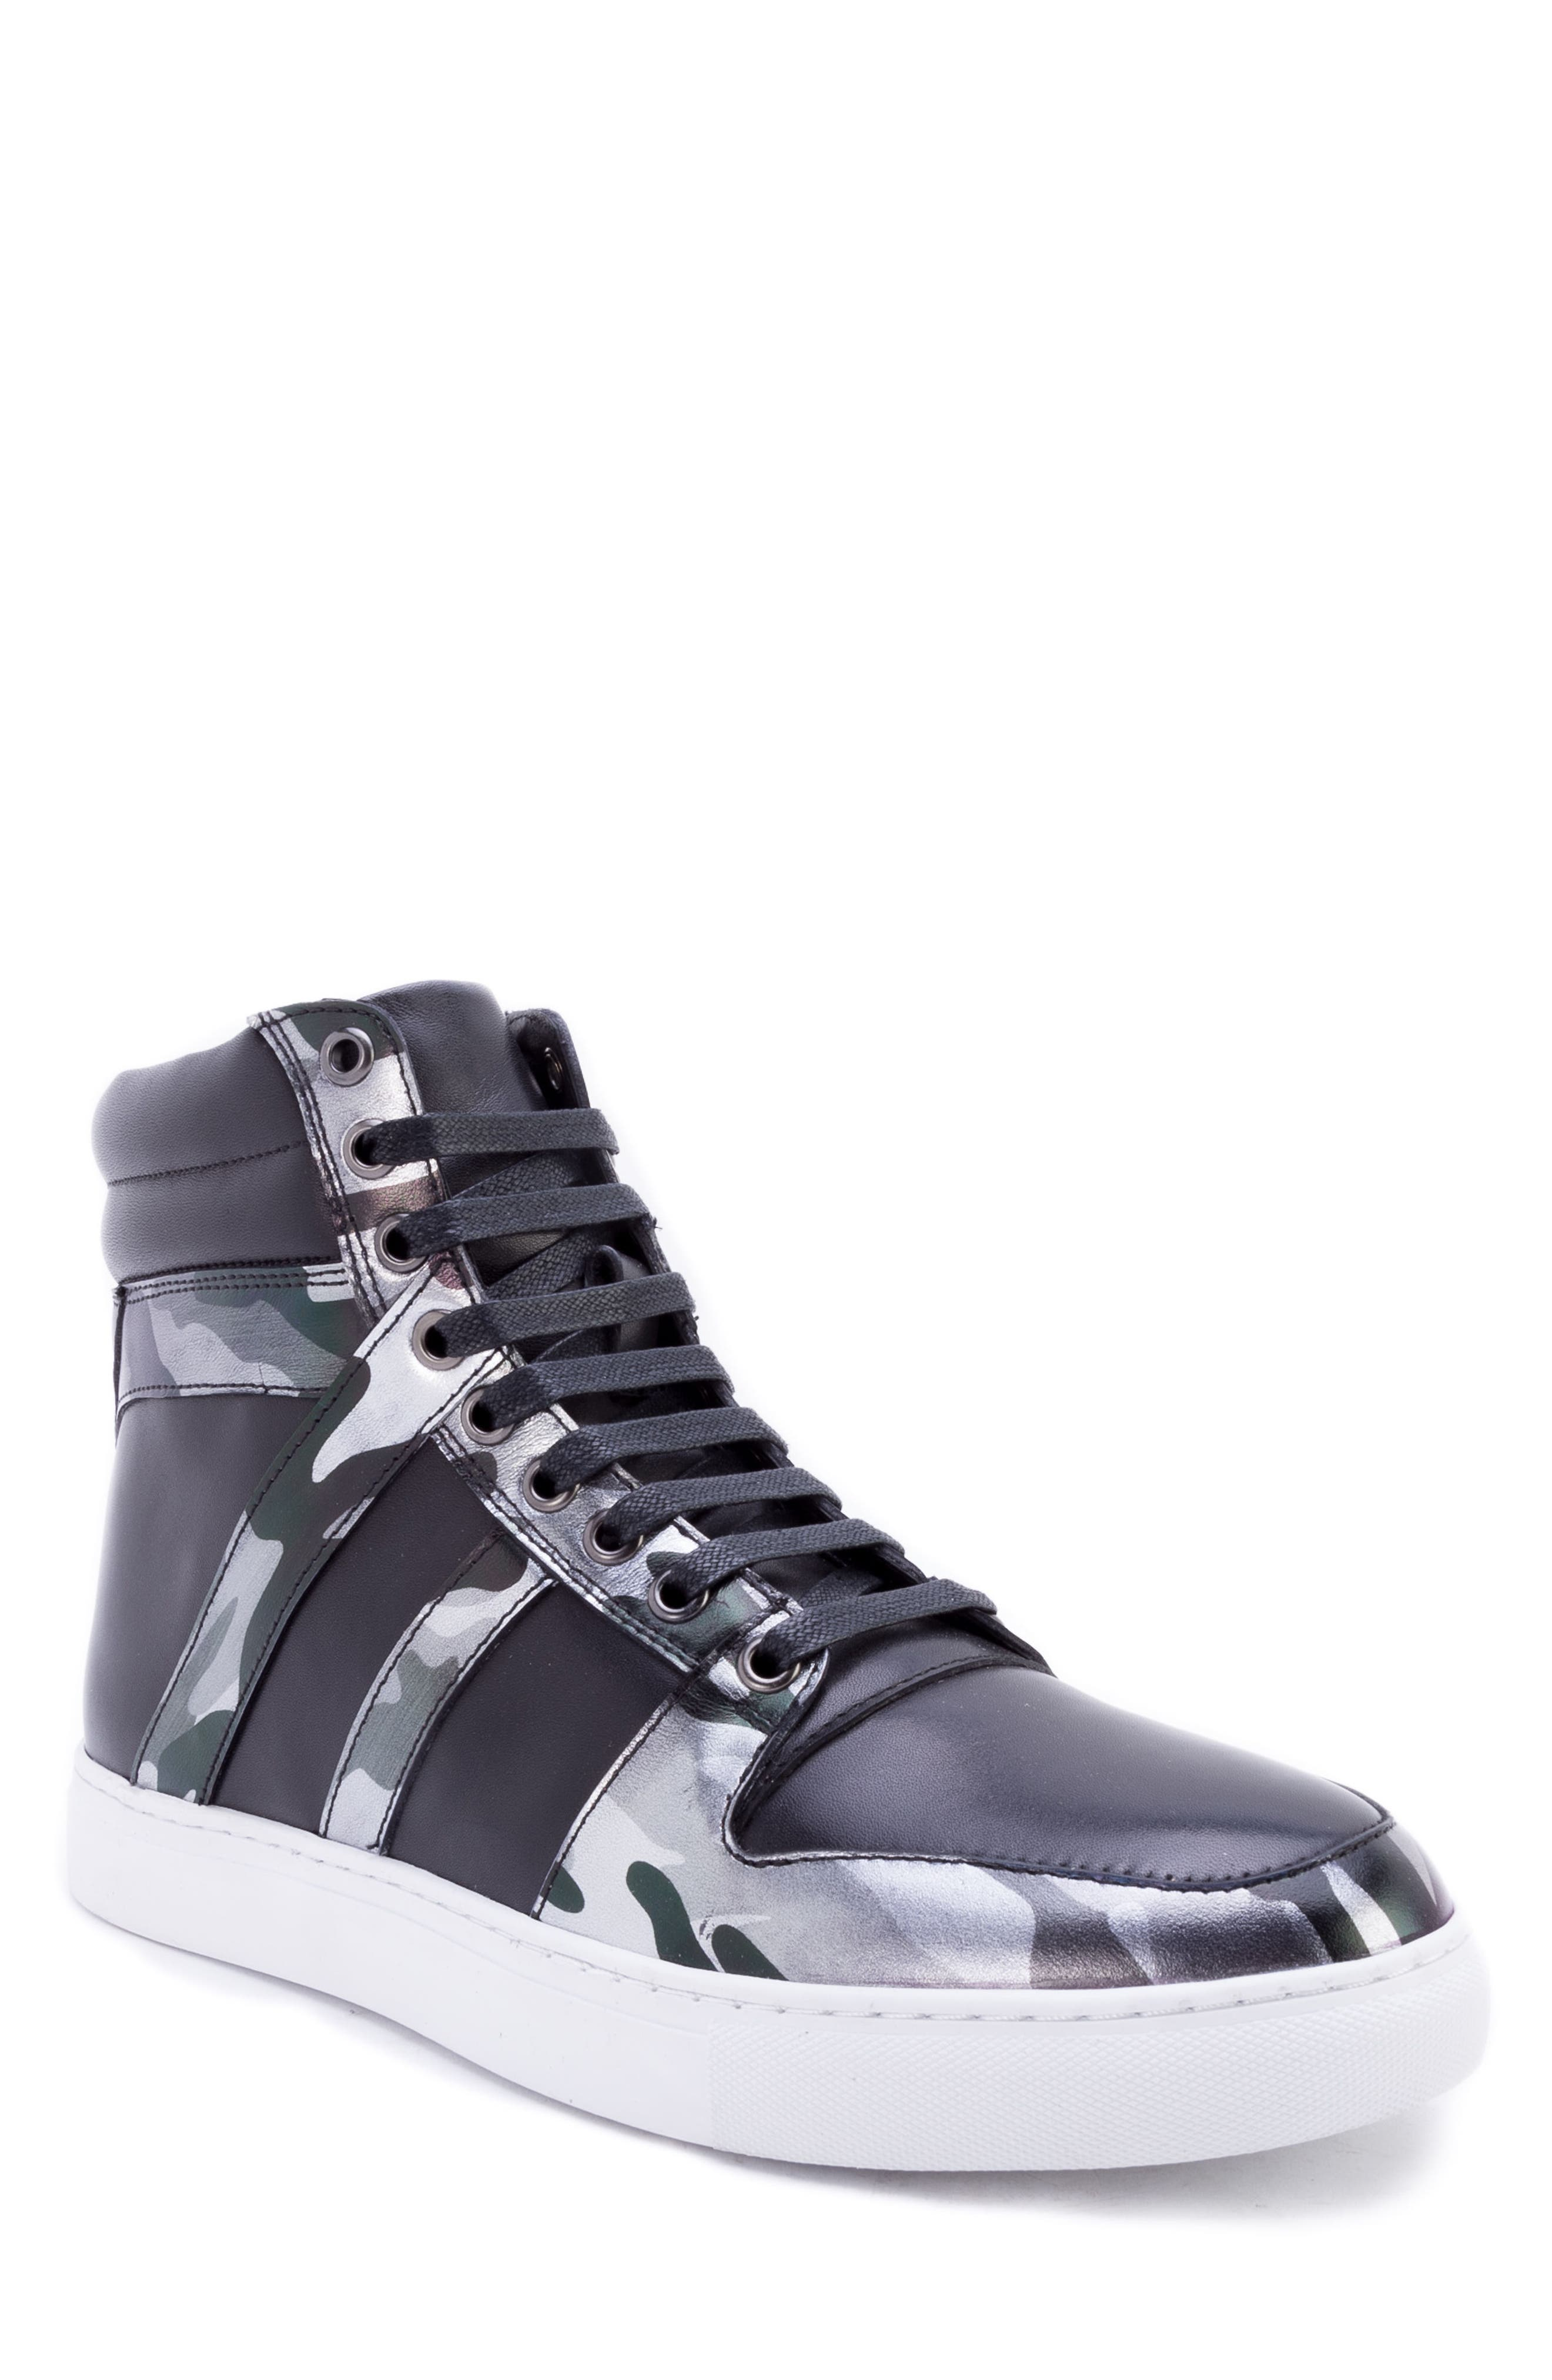 Sutherland Sneaker,                             Main thumbnail 1, color,                             BLACK LEATHER